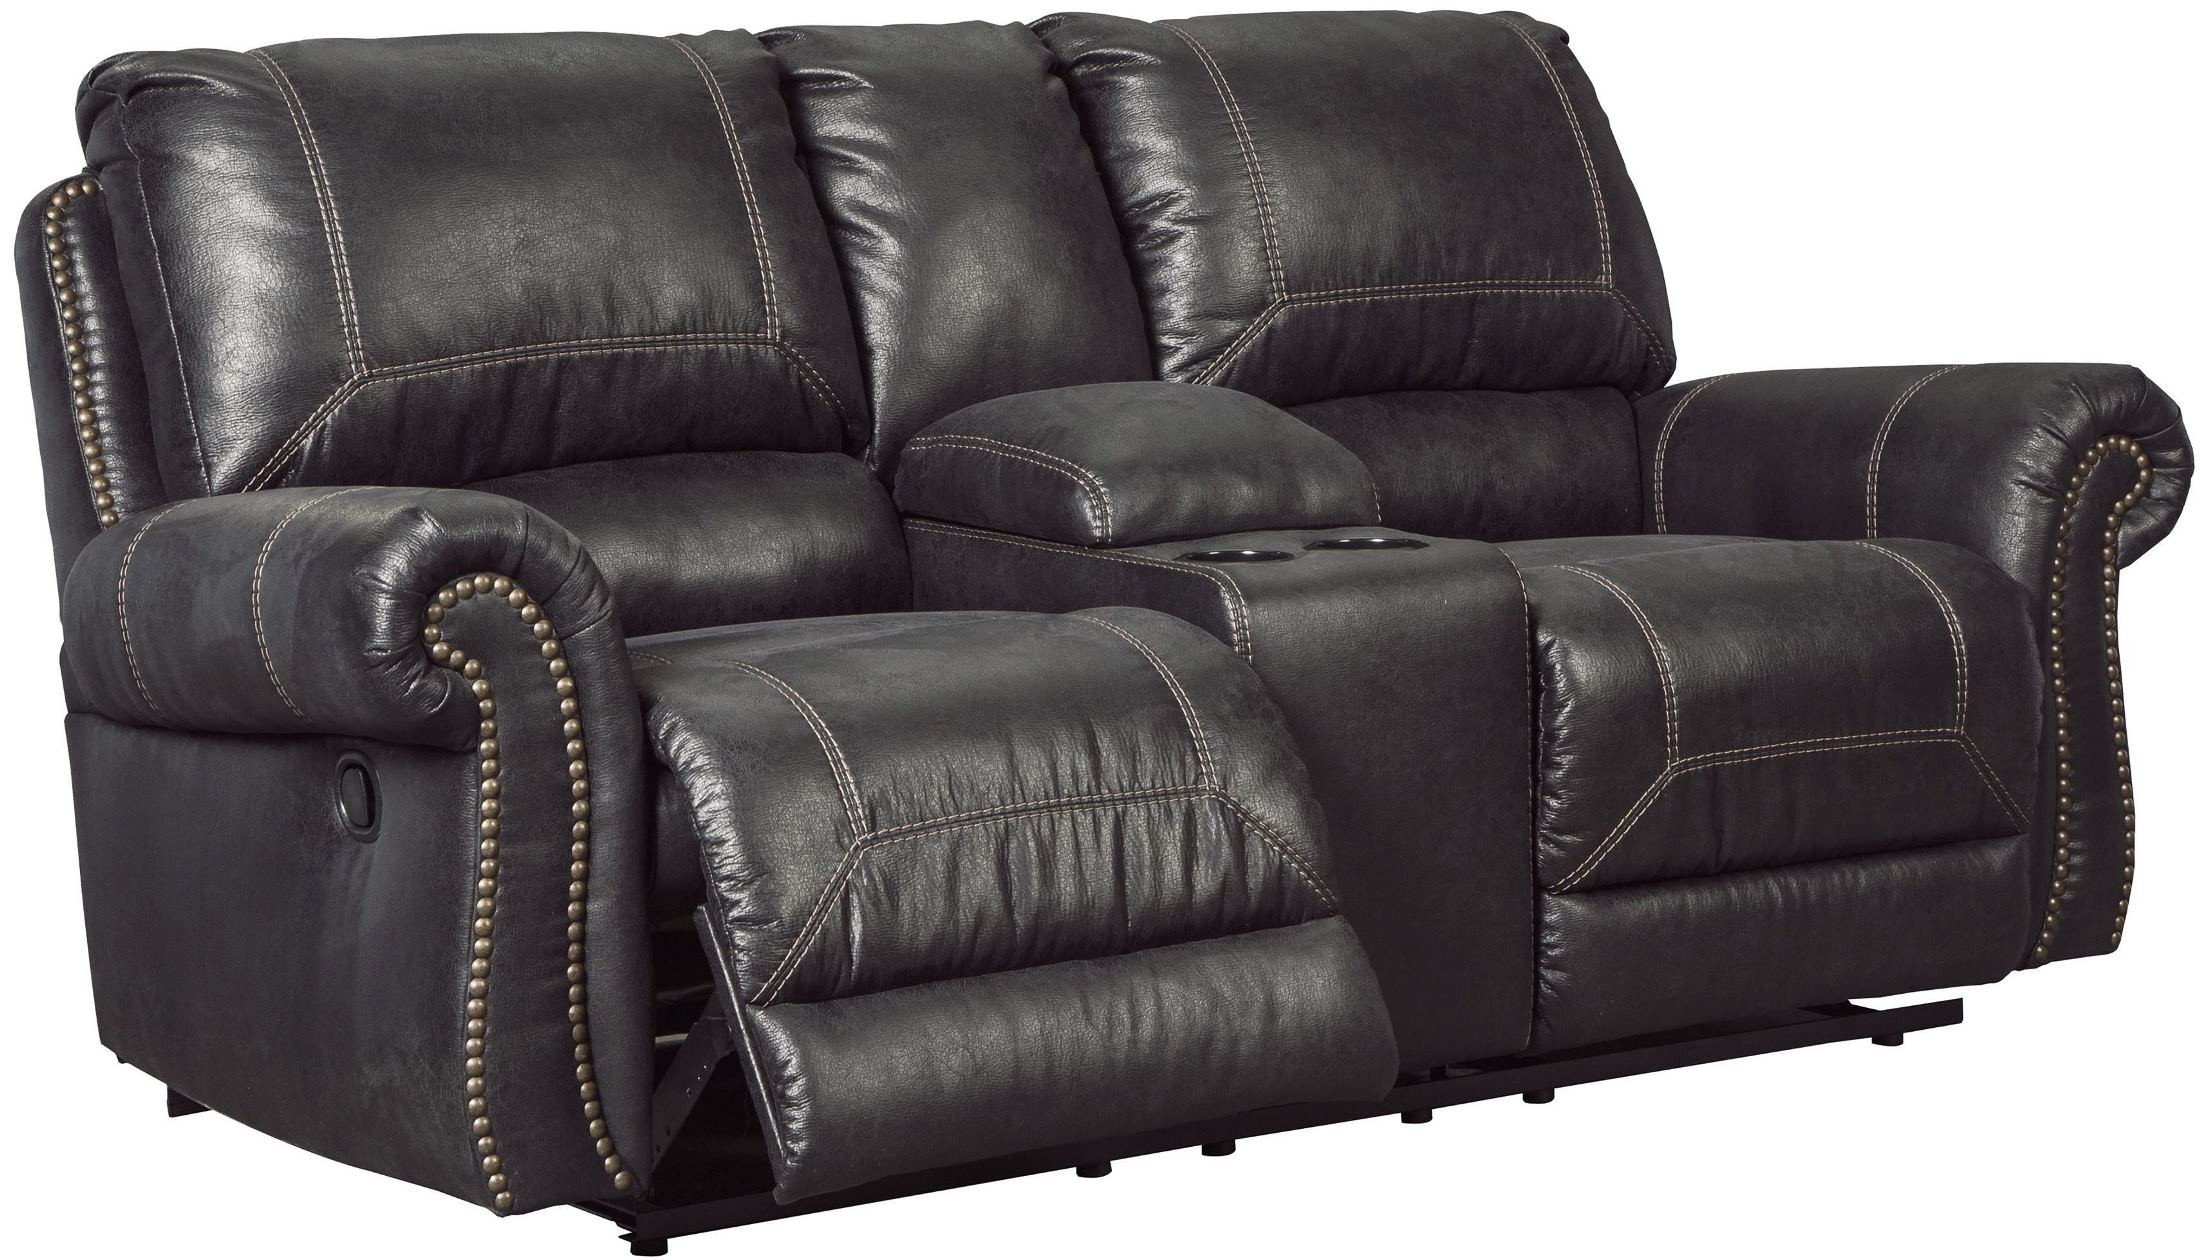 Milhaven Black Double Power Reclining Console Loveseat 6330396 Ashley